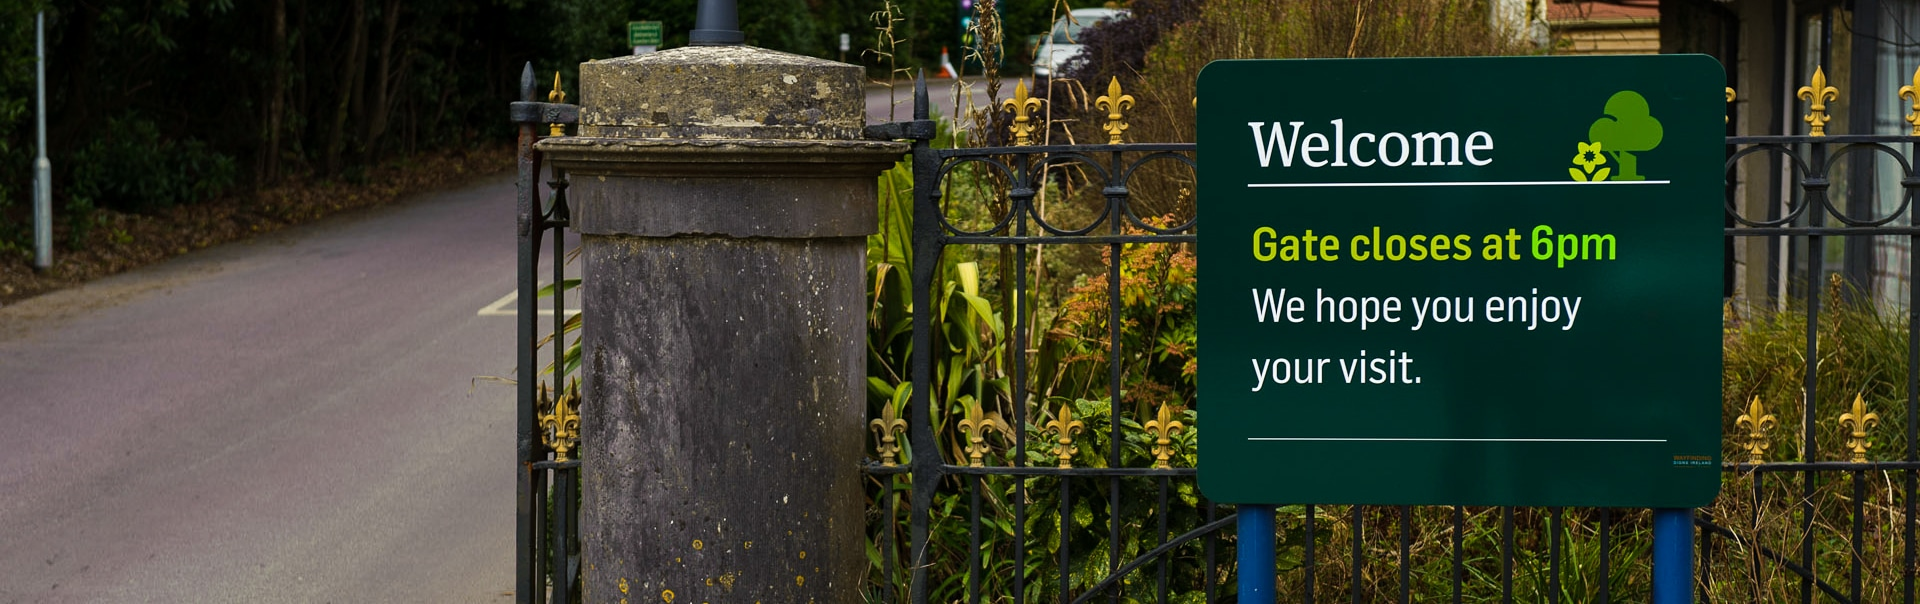 A wayfinding sign welcomes guests to Fota House, one of Ireland's most popular visitor attractions